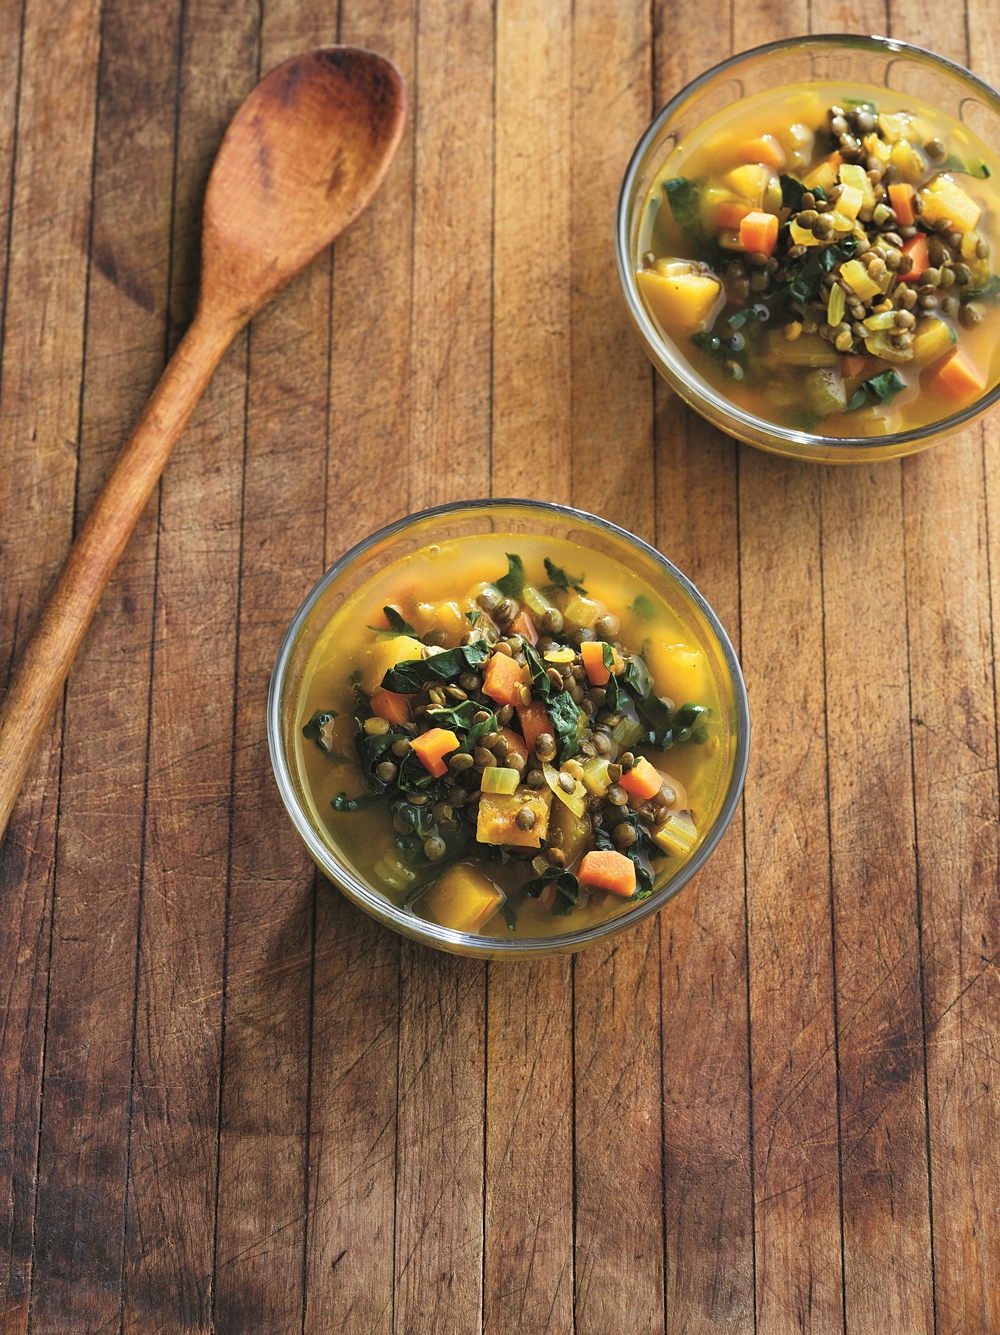 Cozy Lentil Soup with Delicata Squash. Photo: Maren Caruso